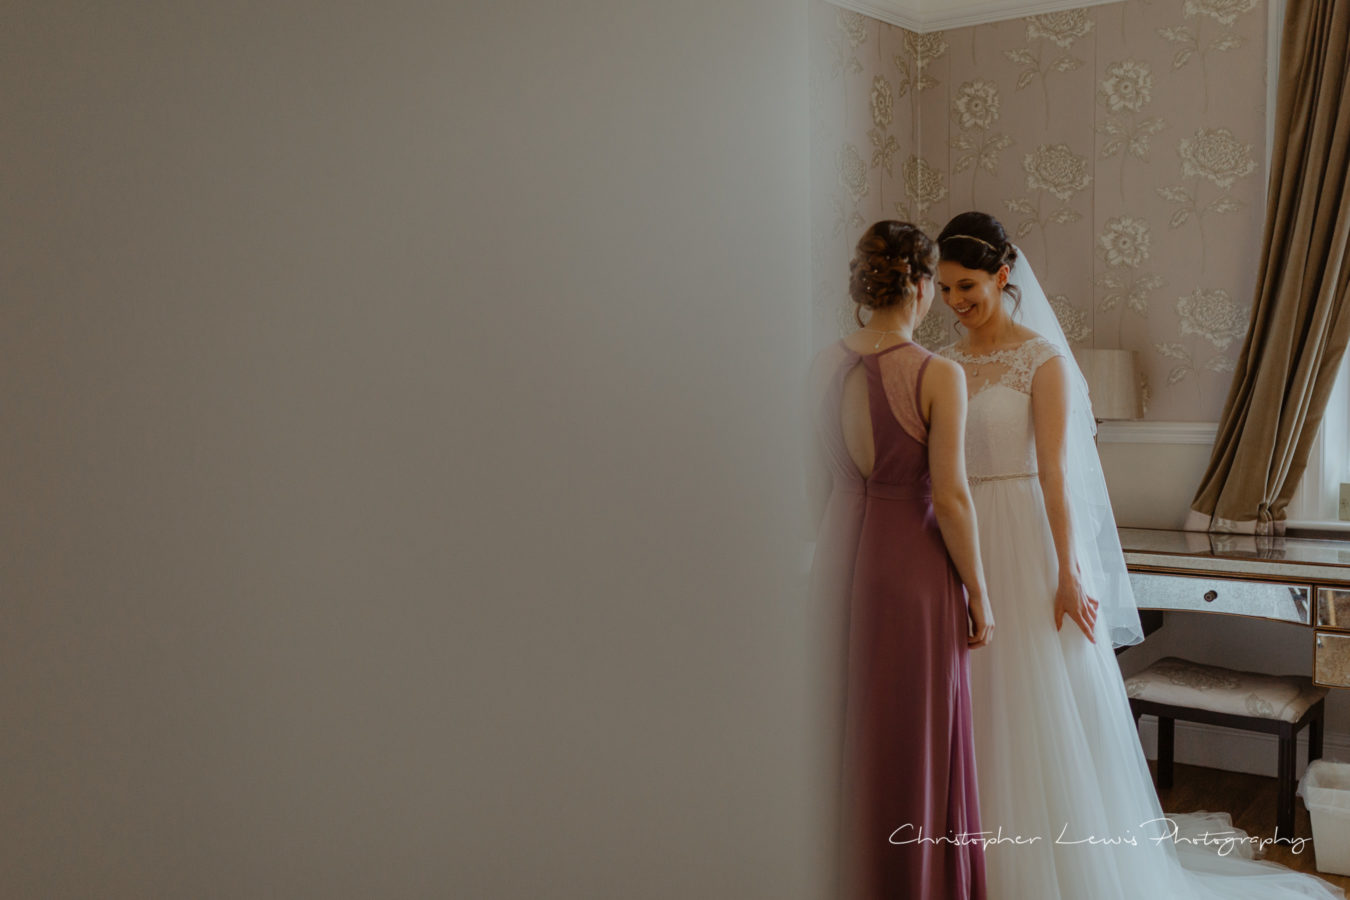 Ashfield-House-Wedding-Christopher-Lewis-Photography-23